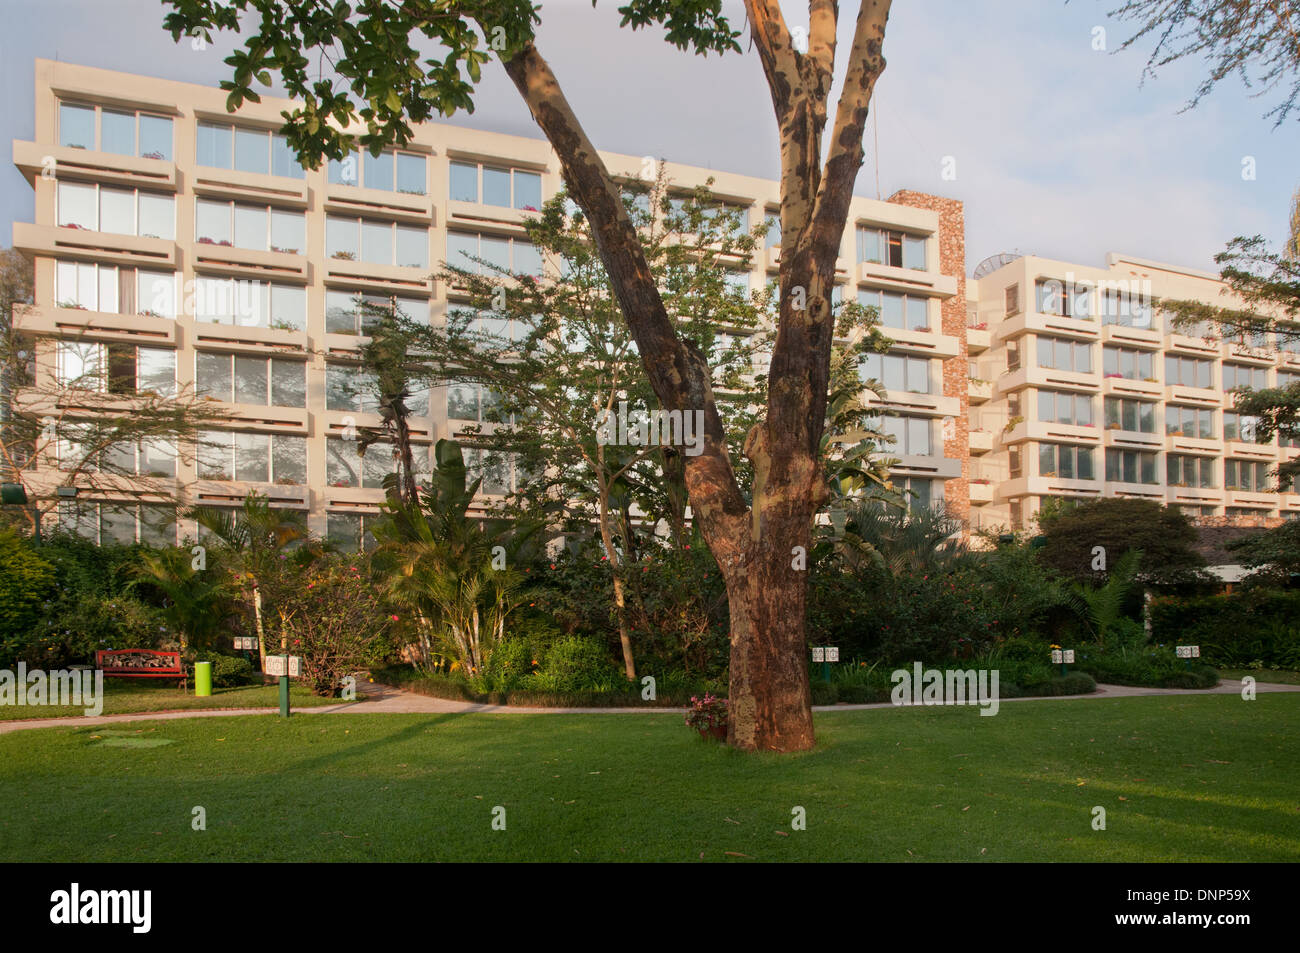 Facade of the Nairobi Serena Hotel seen from the Hotel Garden with green lawns in foreground - Stock Image